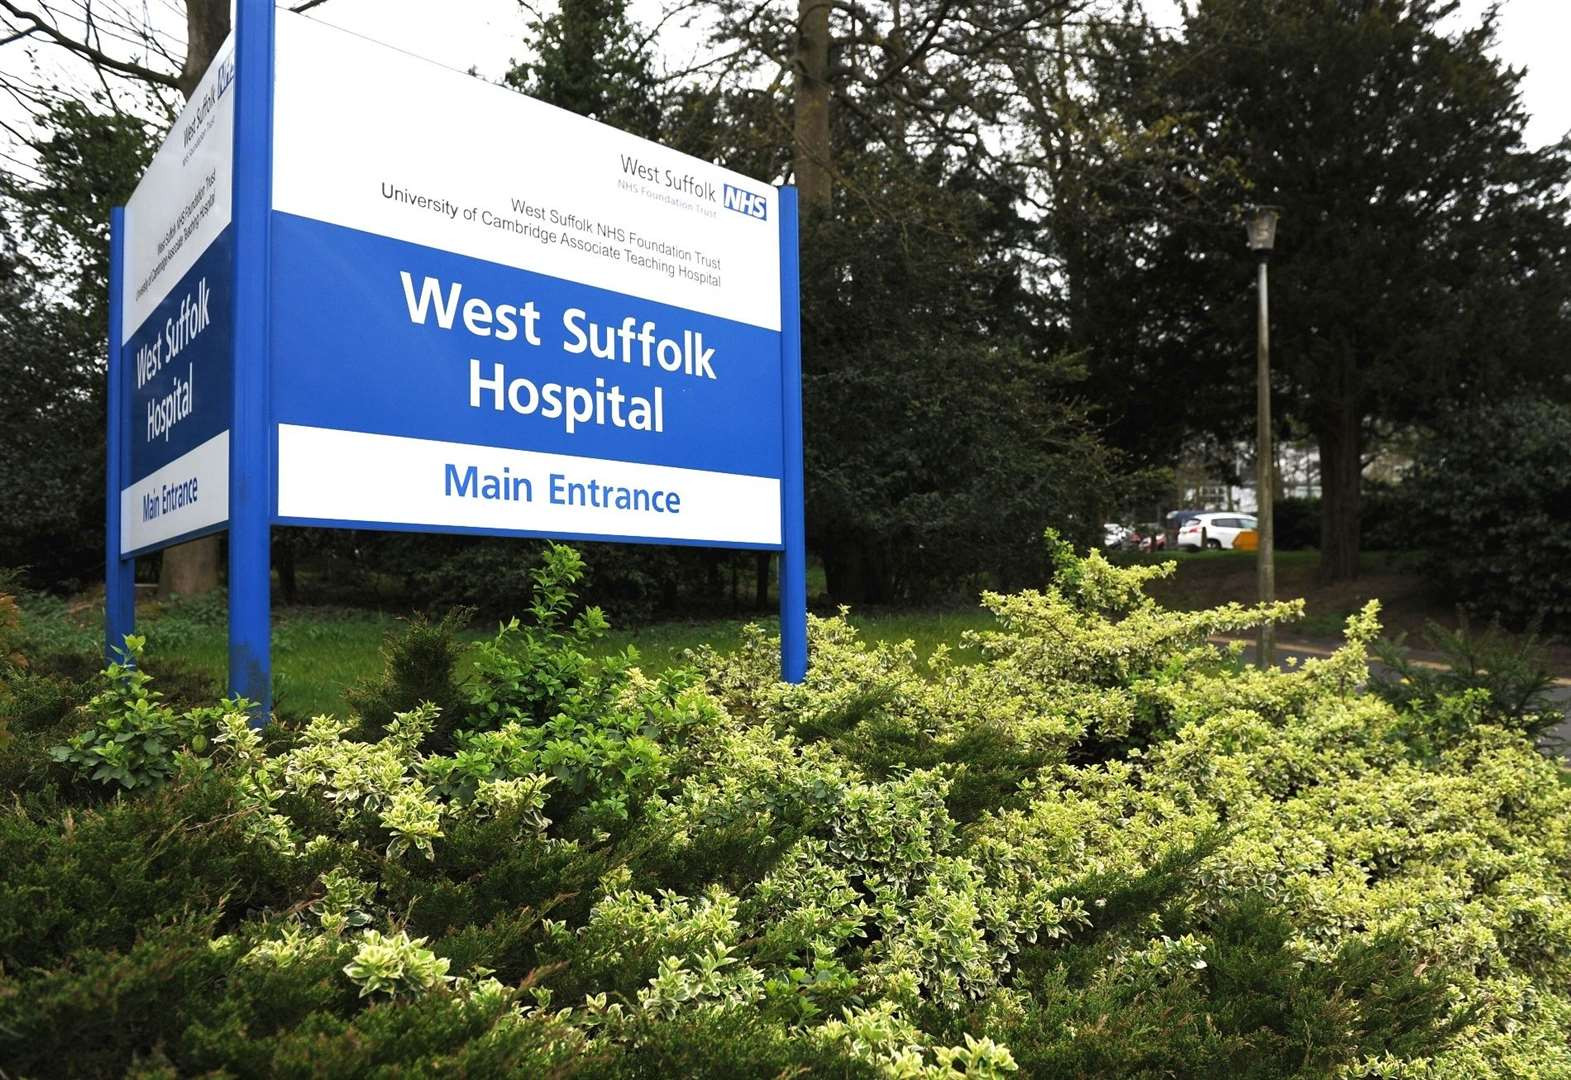 West Suffolk Hospital answers allegations of bullying